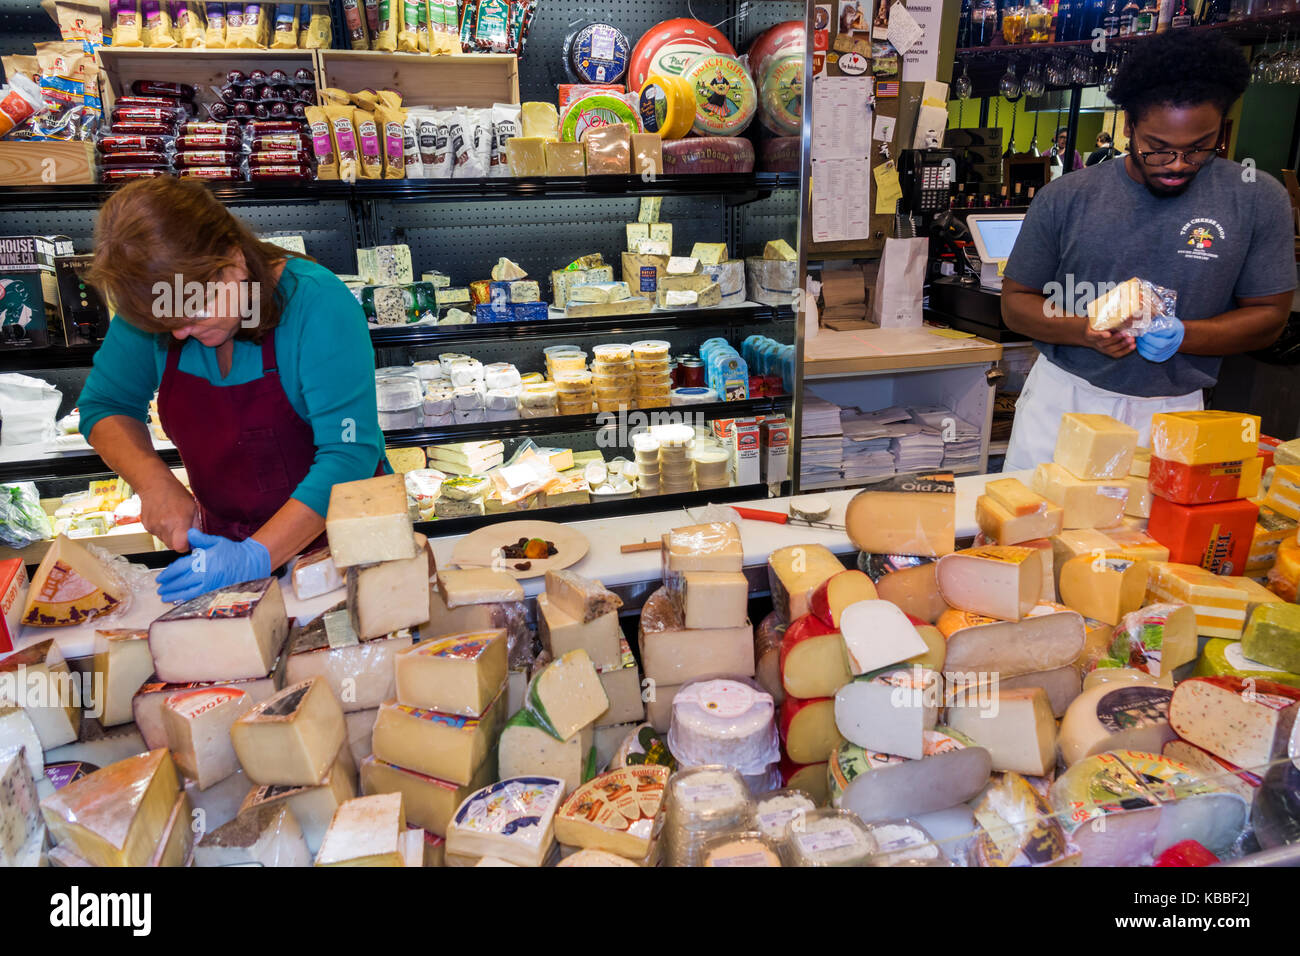 Colonial Williamsburg Virginia The Cheese Shop store shopping inside cheese wedges Black man woman preparing - Stock Image